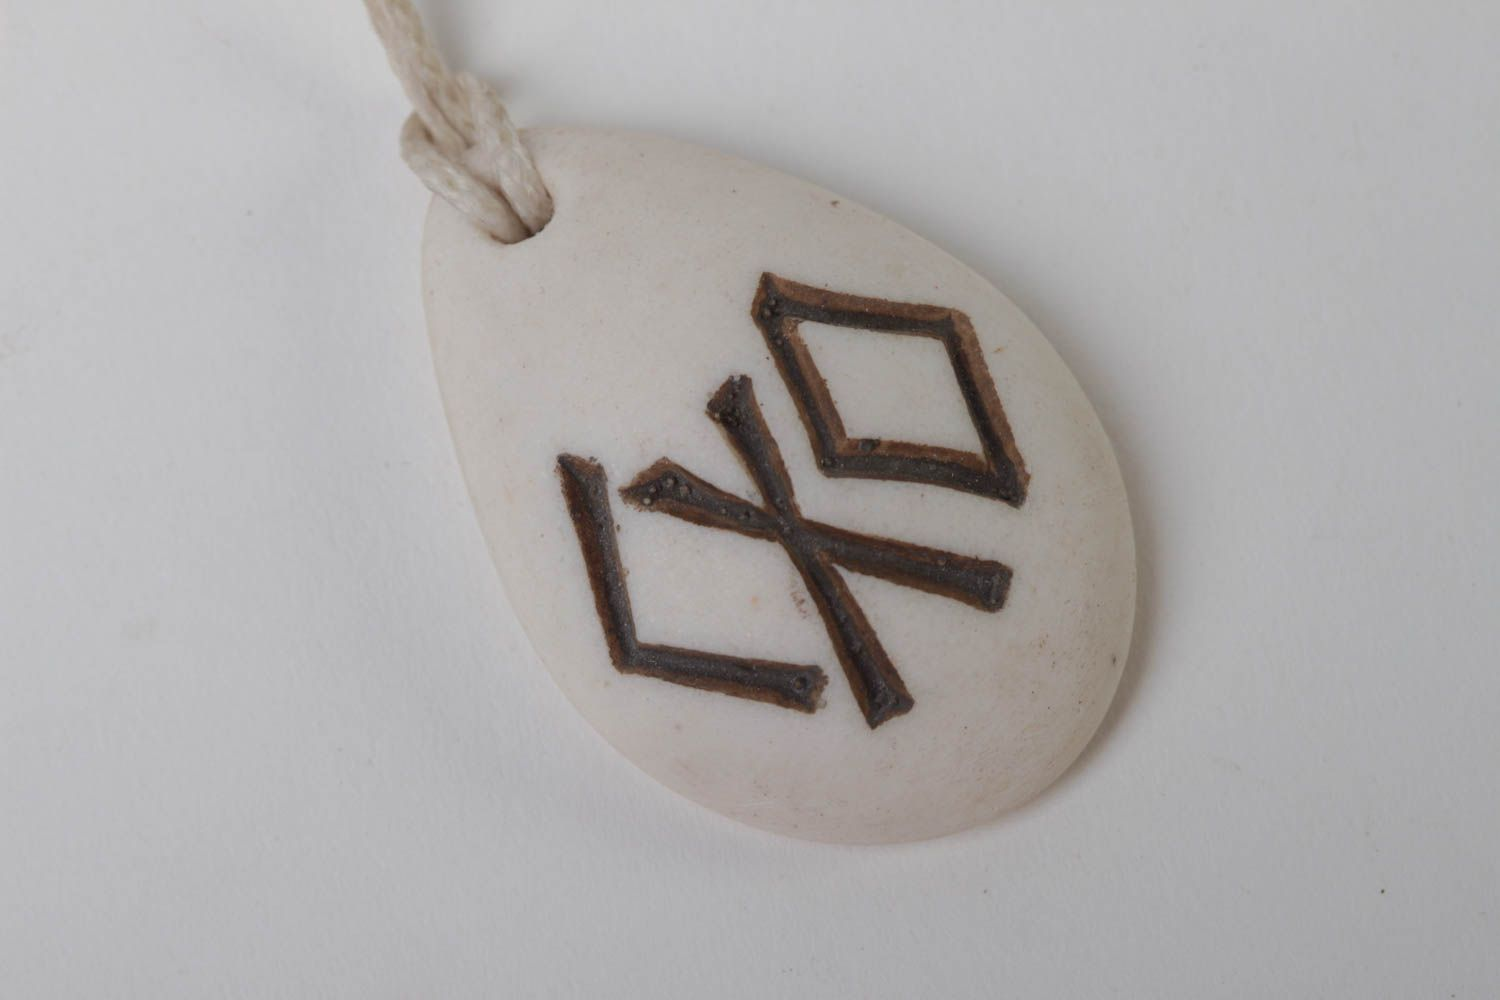 next-to-skin amulets Handmade resin pendant accessory with runes polymer resin jewelry for men - MADEheart.com